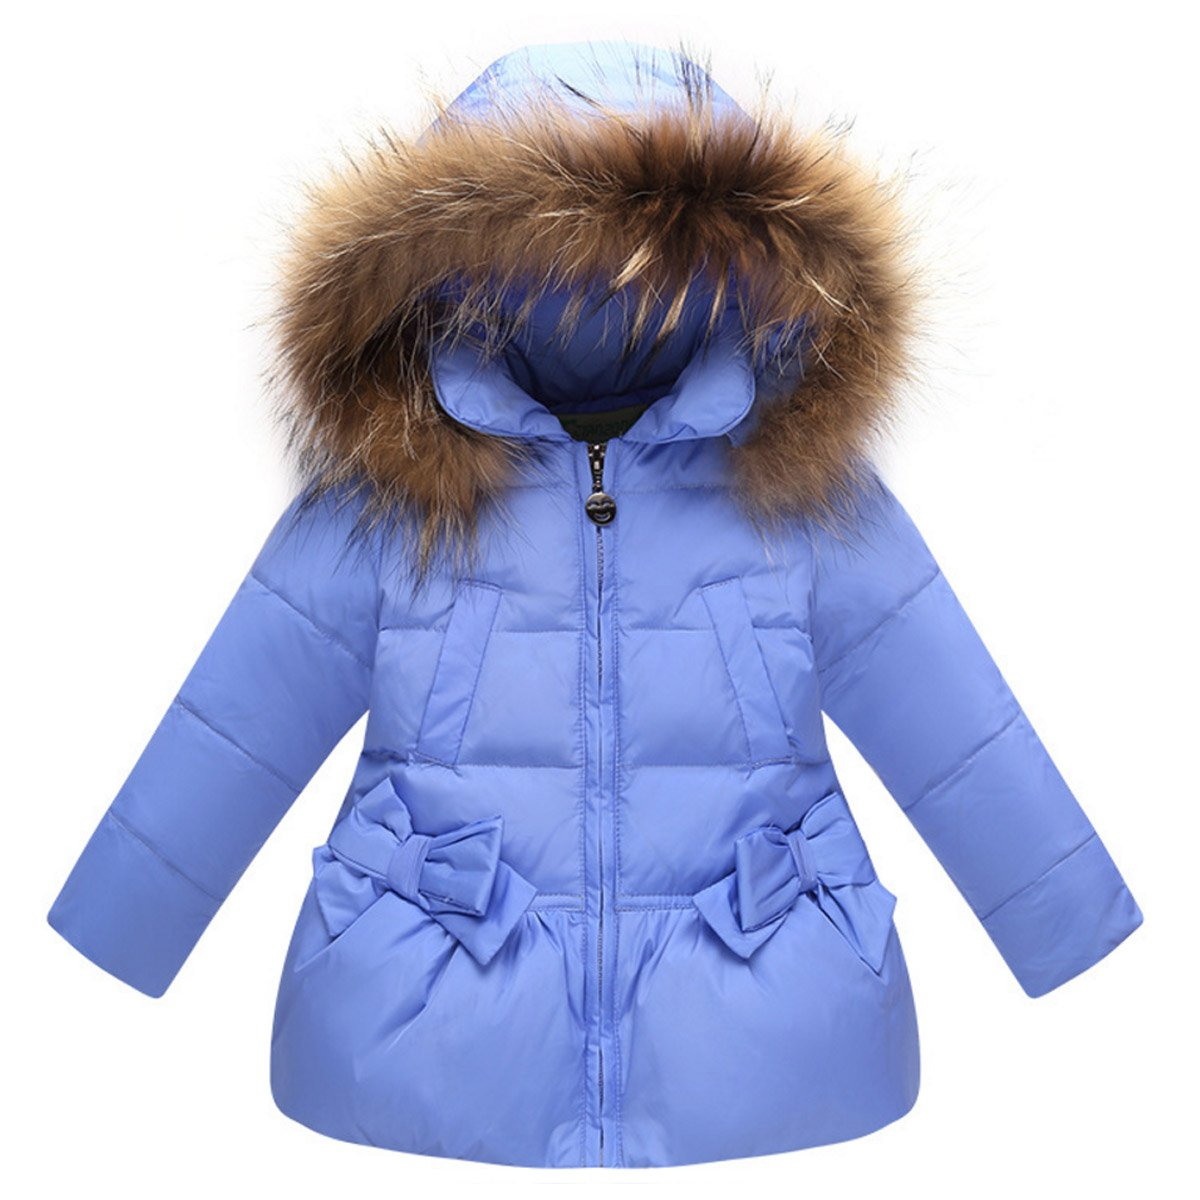 Girls Winter Down Coat Fur Trim Hooded Puffer Jacket with Bowknot Pockets Happy Cherry